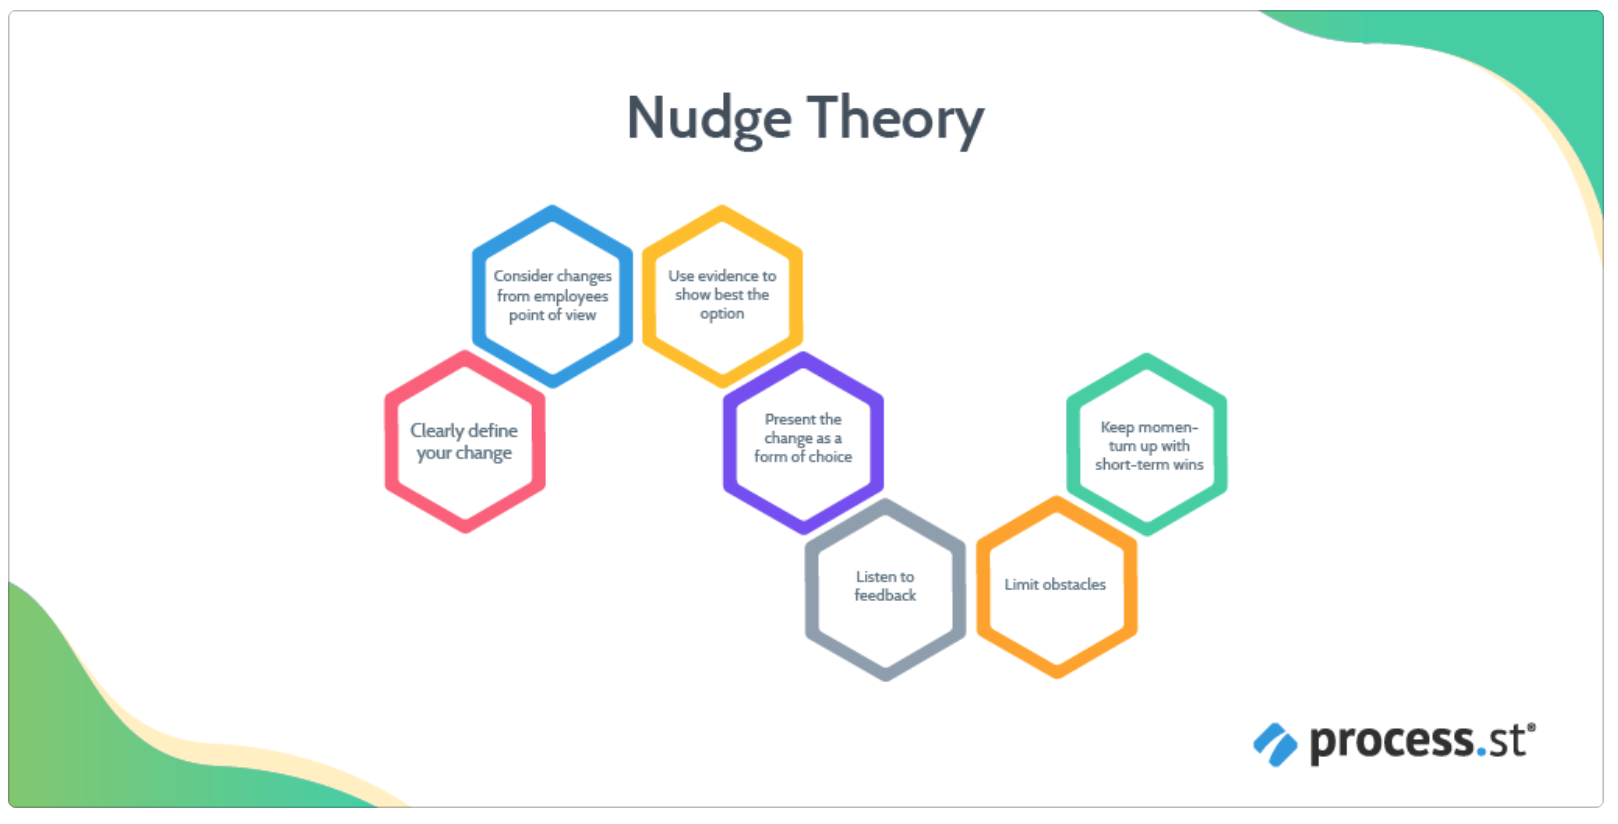 The Nudge TheorySource: www.process.st/change-management-models/